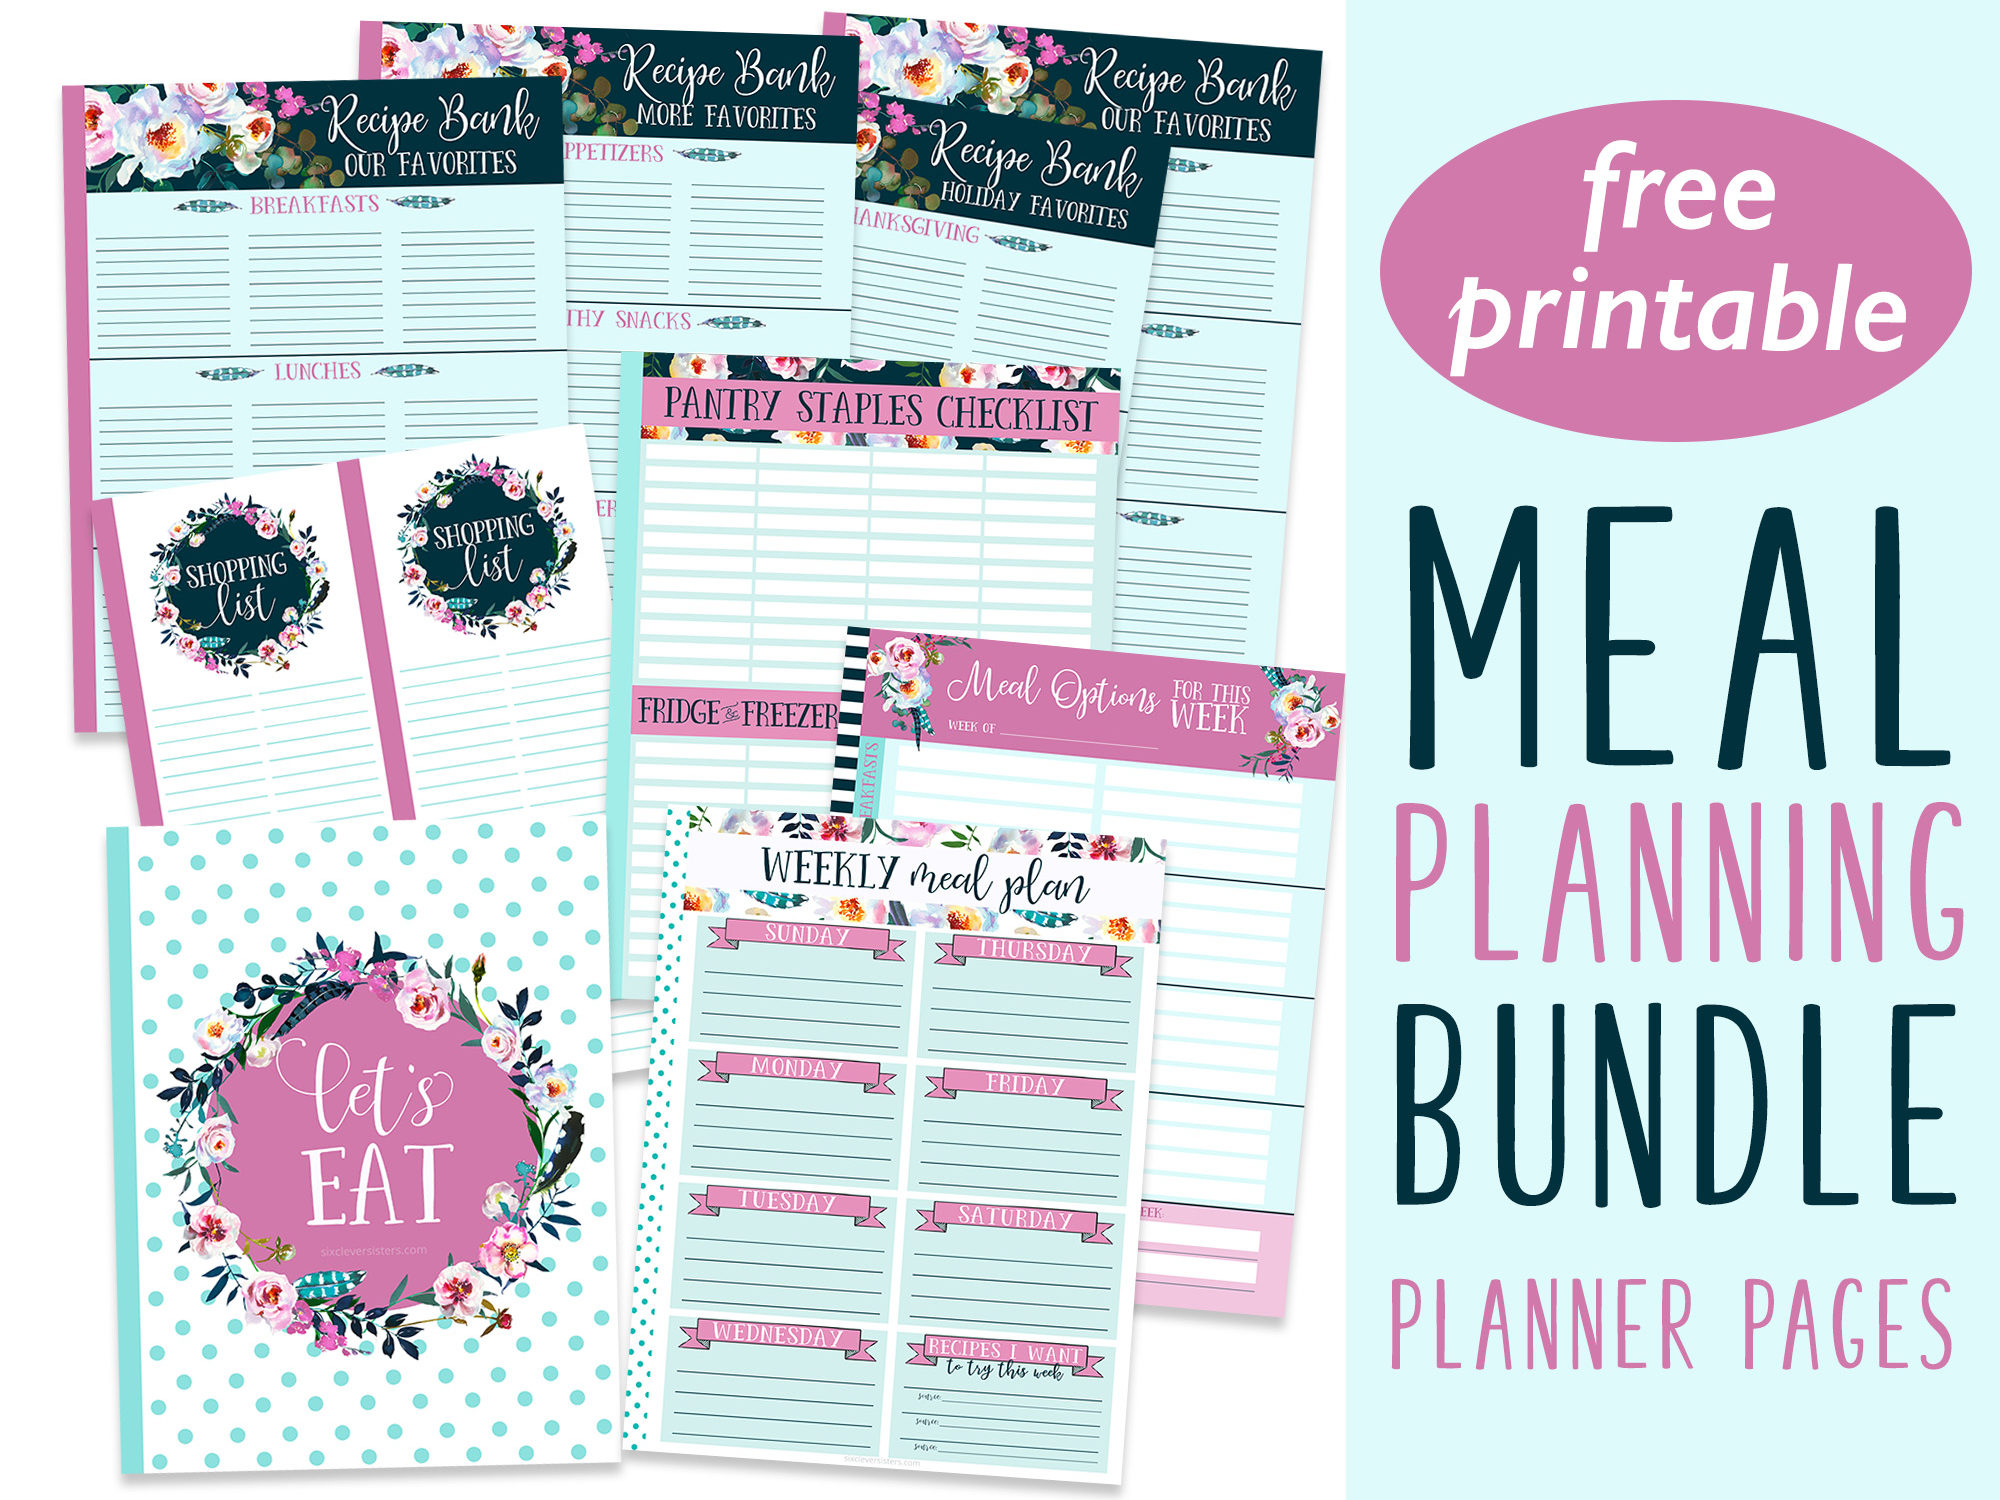 picture about Planner Cover Printable named Printable Dinner Planner Web pages Package deal - 6 Intelligent Sisters